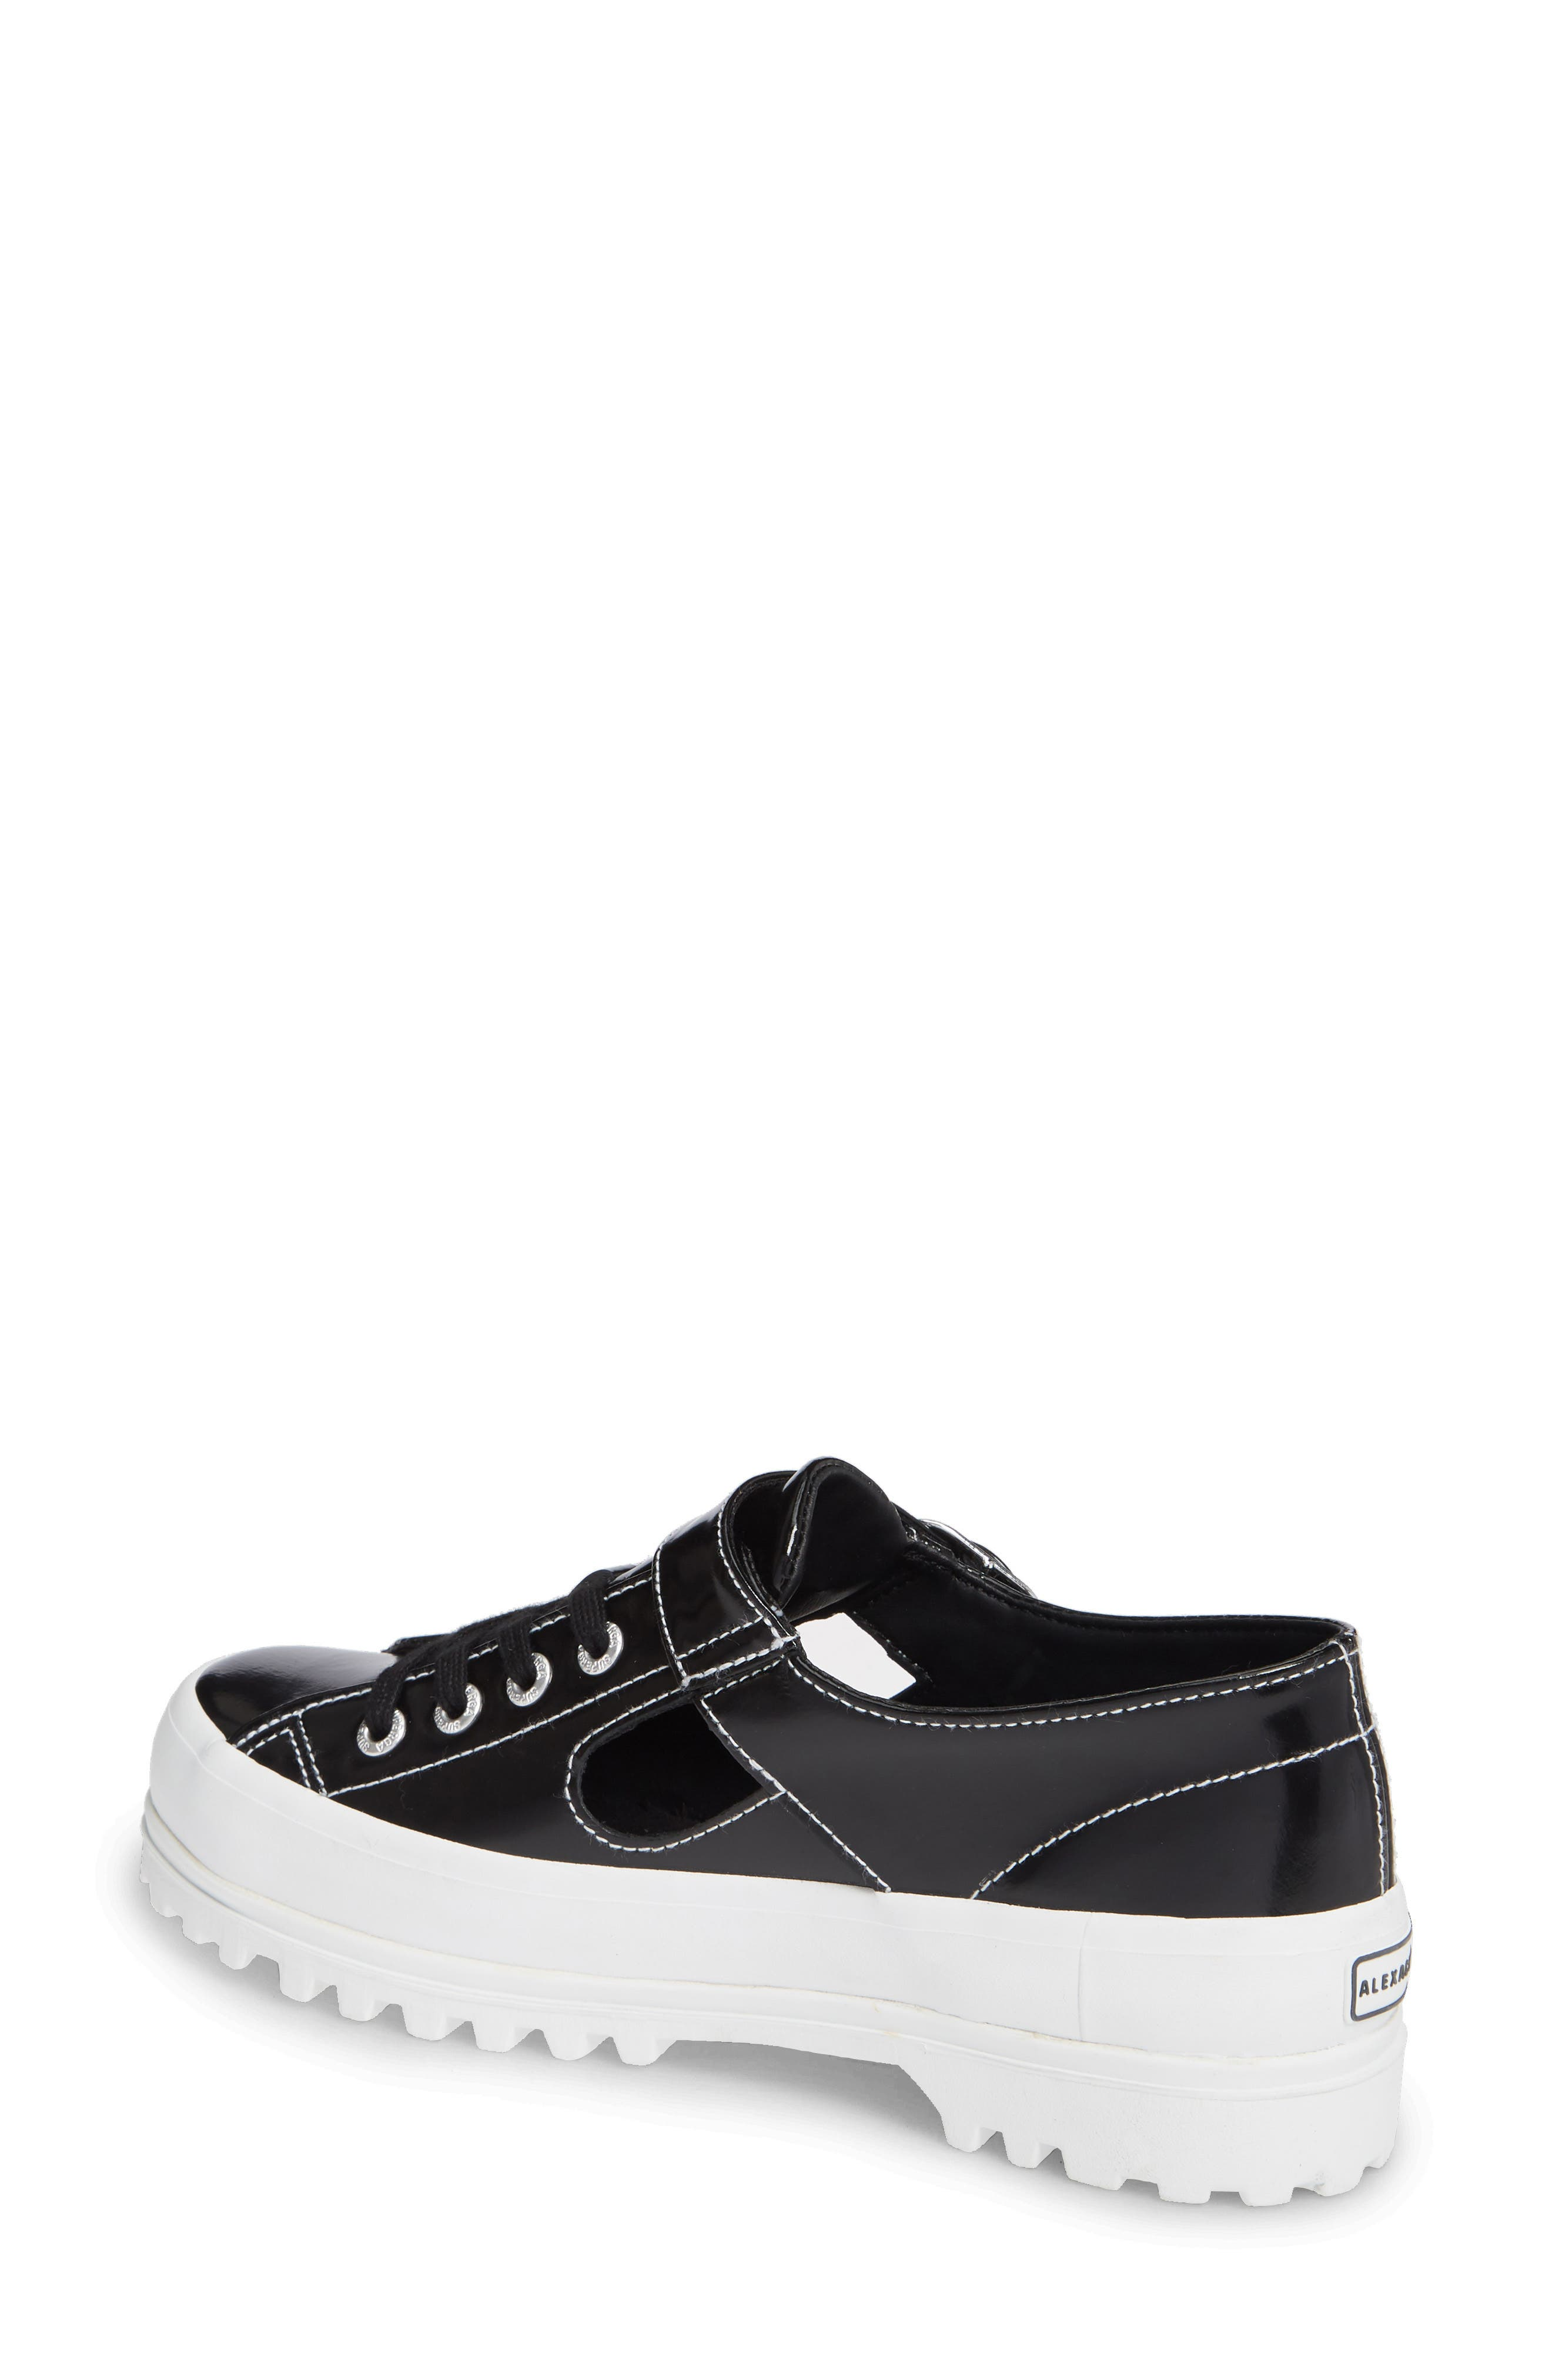 x Alexa Chung 2254 Alpinaleapatentw Platform Sneaker,                             Alternate thumbnail 2, color,                             BLACK